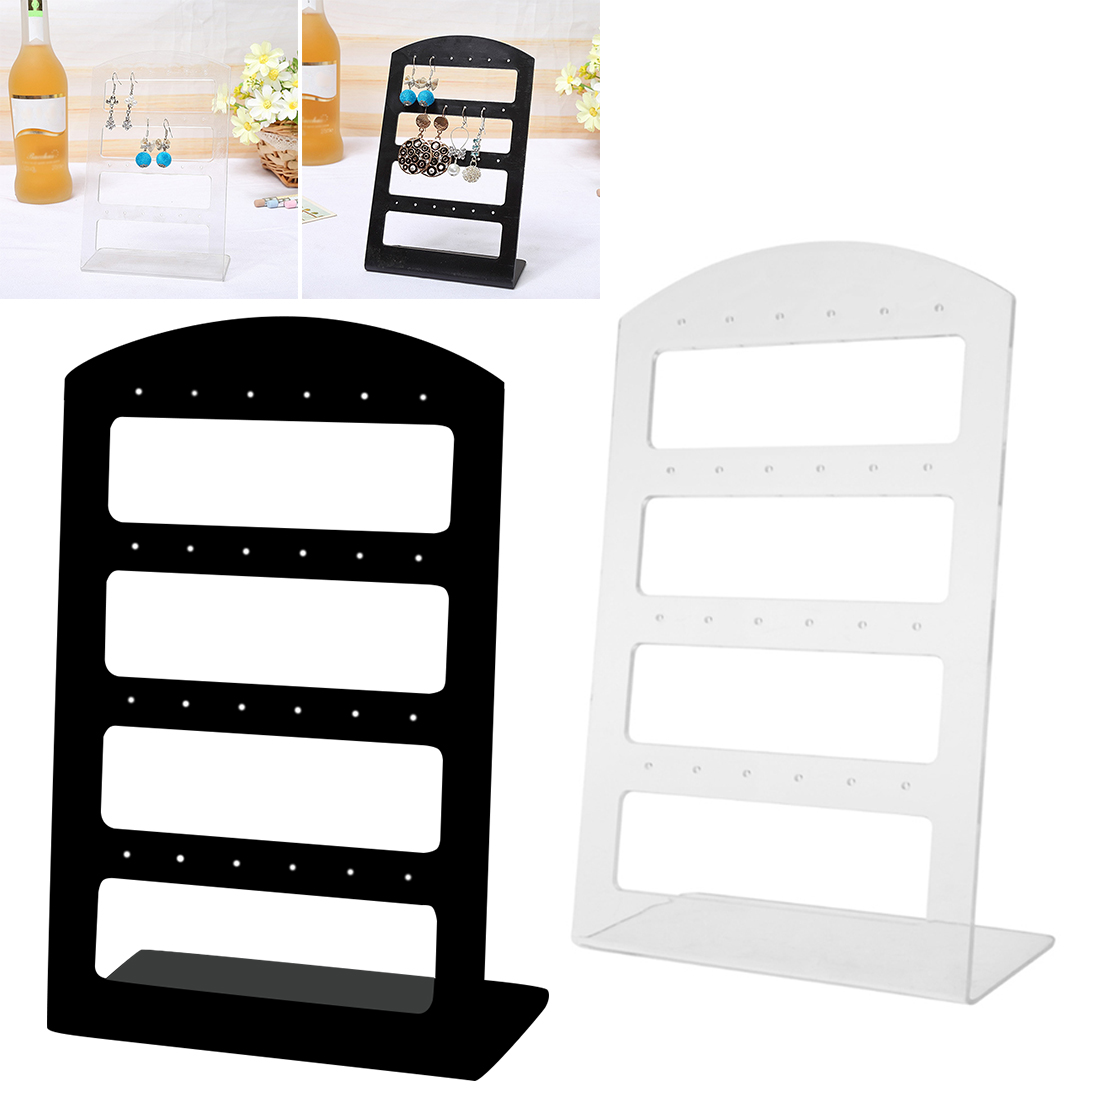 24 Holes Stud/Dangle Earrings Display Holder Showing Stand Rack Jewelry Packaging Plastic Show Organizer Storage Transparent